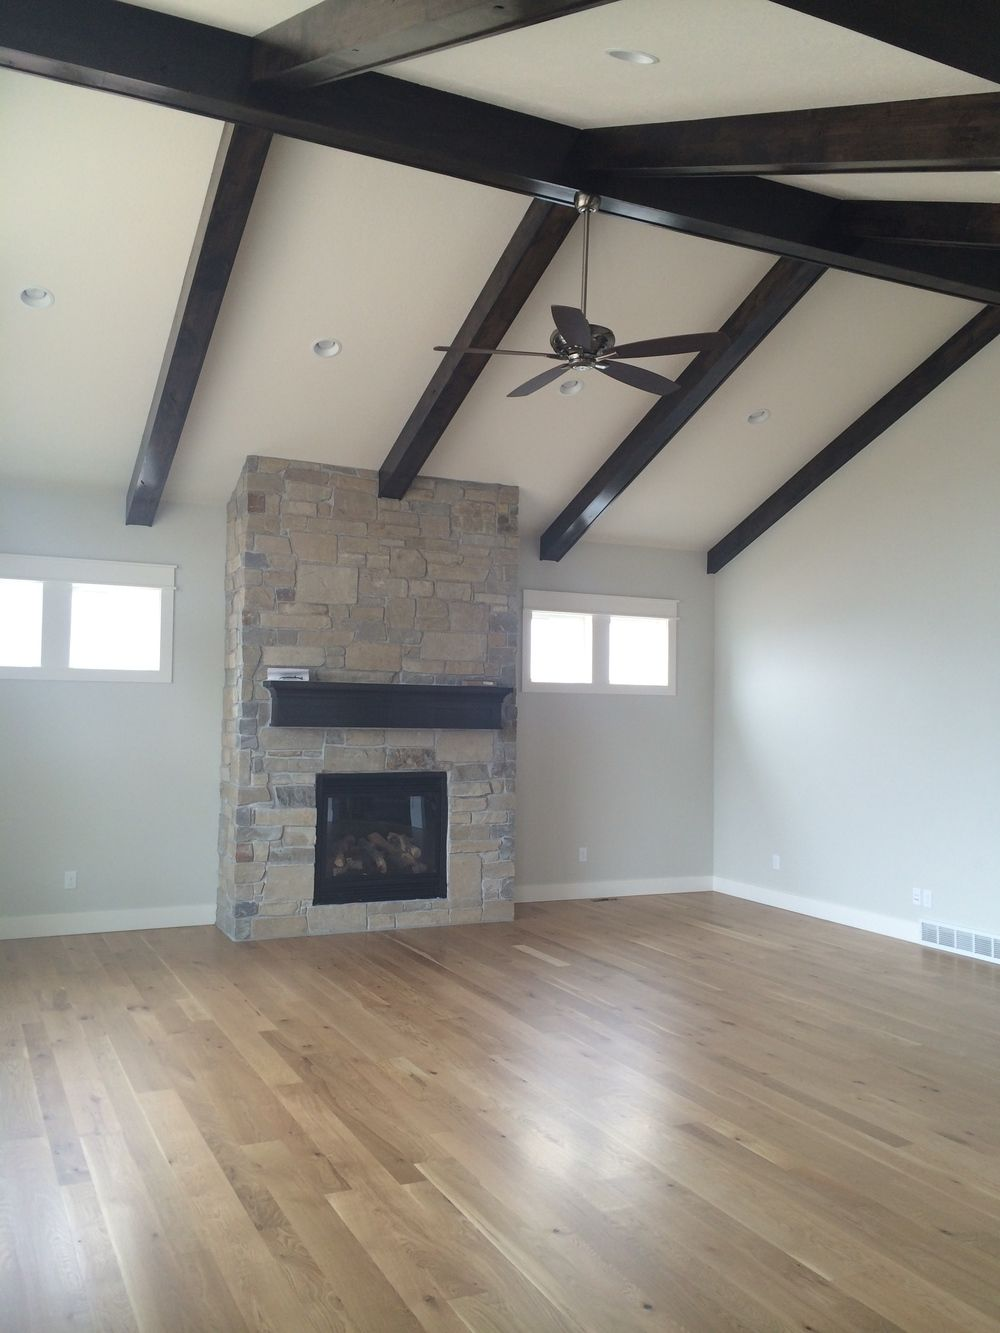 Faux beams highlight the vaulted ceiling and